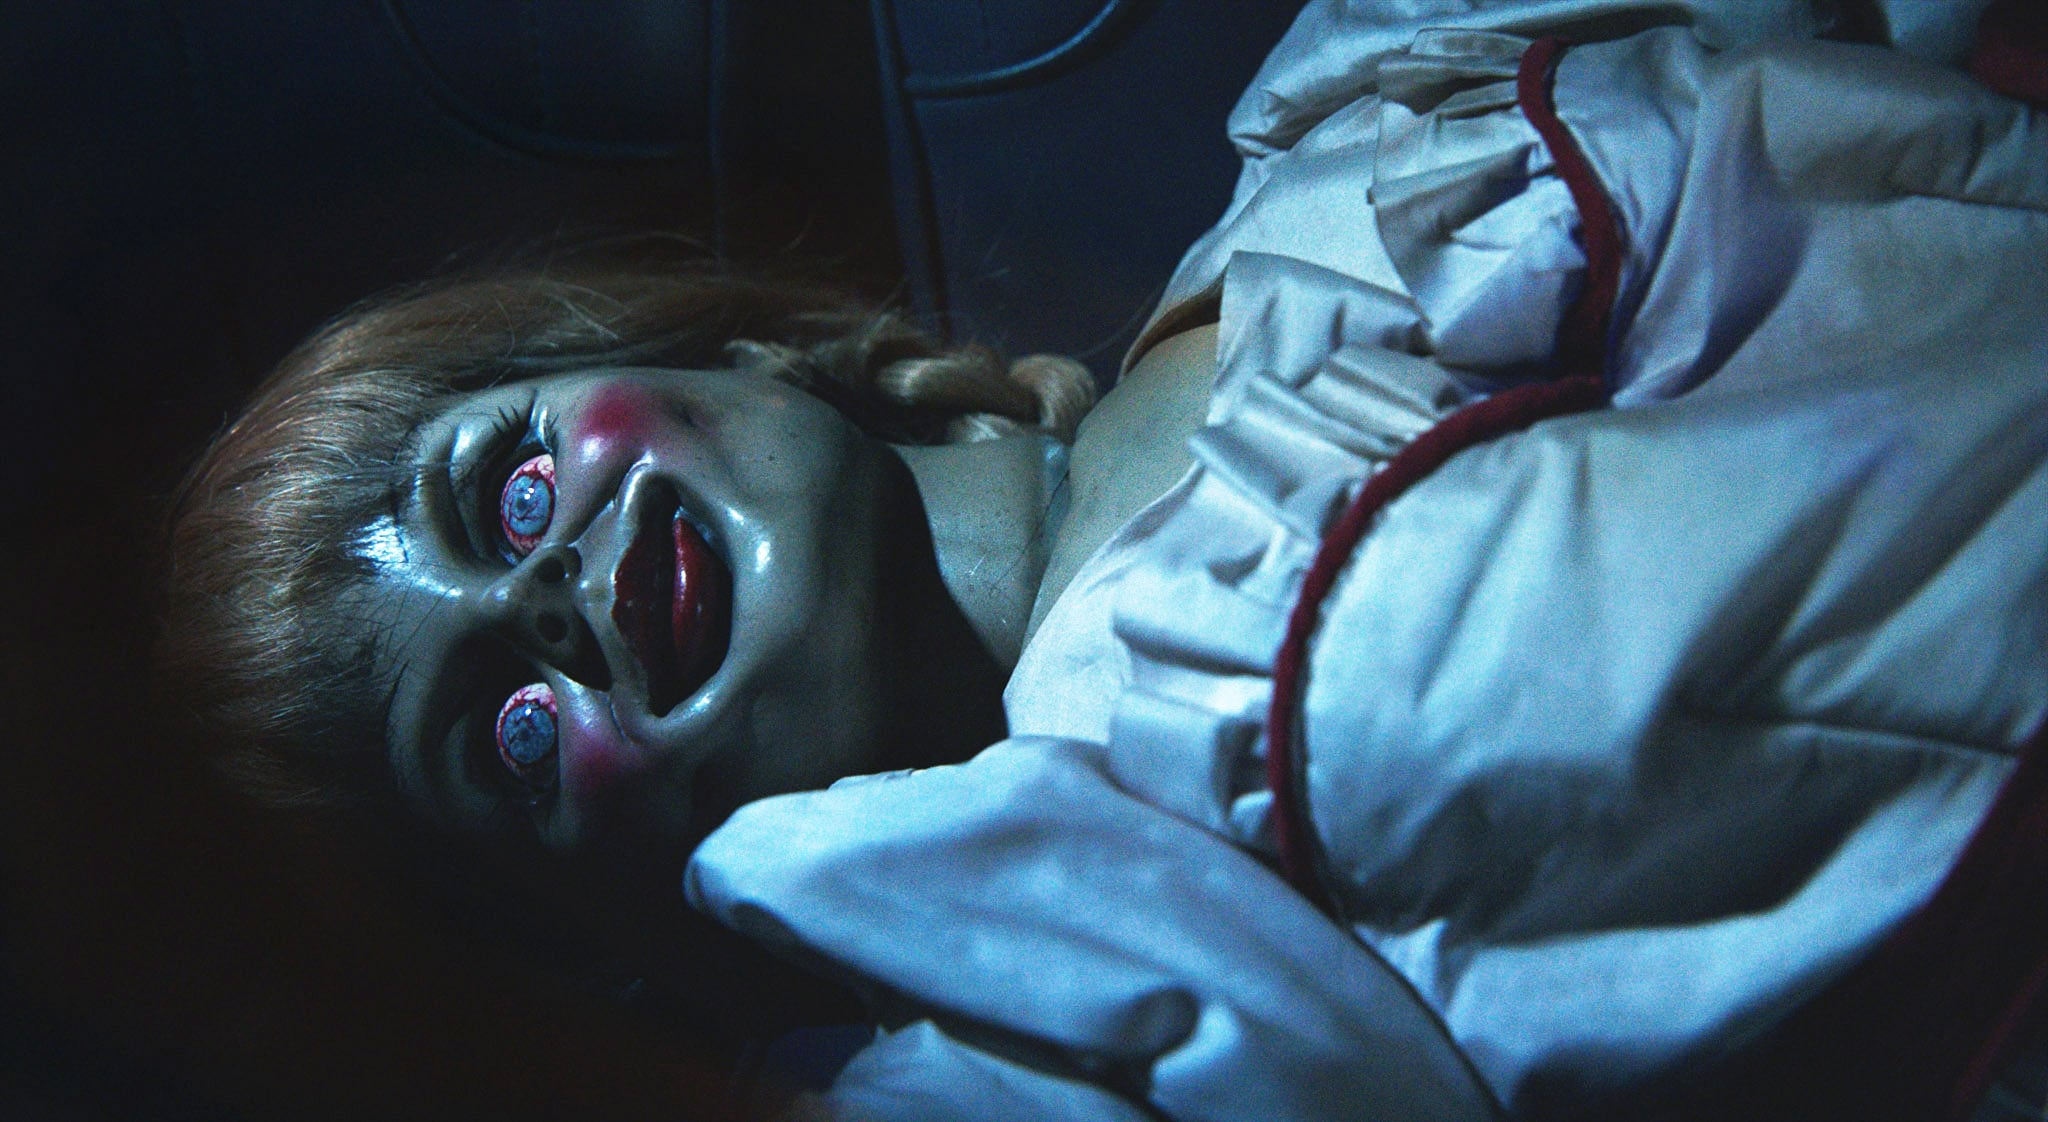 ANNABELLE, 2014. Warner Bros. Pictures/courtesy Everett Collection